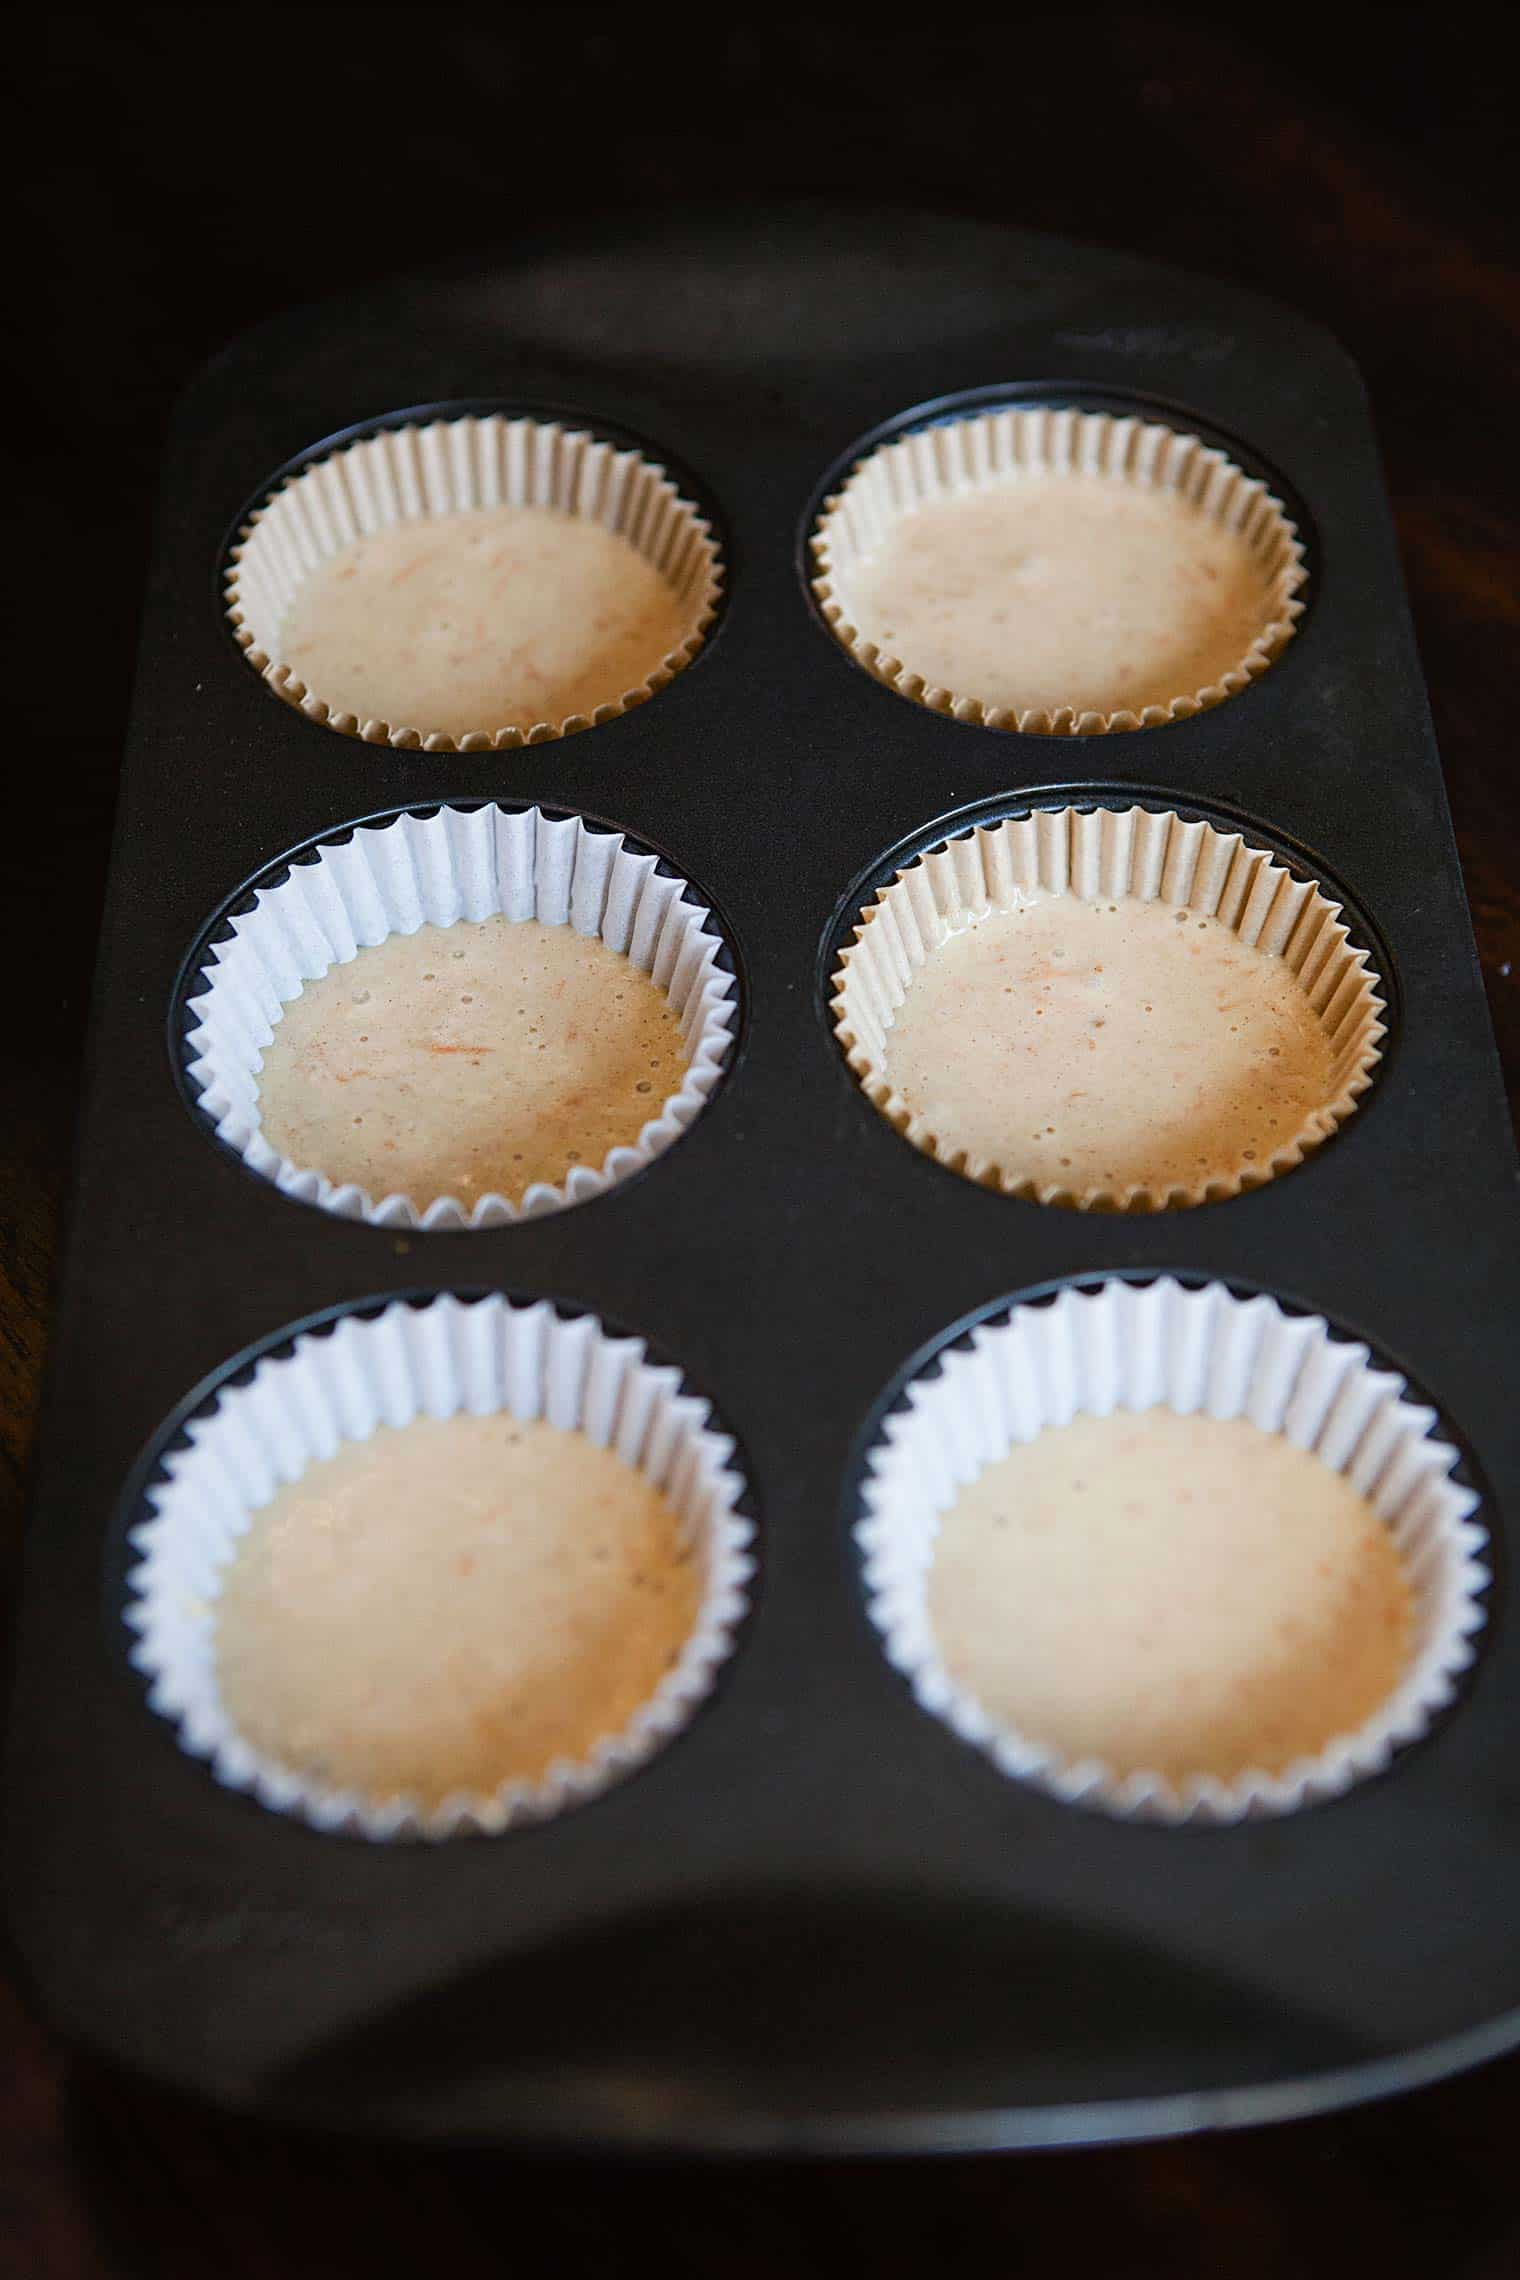 carrot-cupcake-batter-in-muffin-tins-ready-to-bake